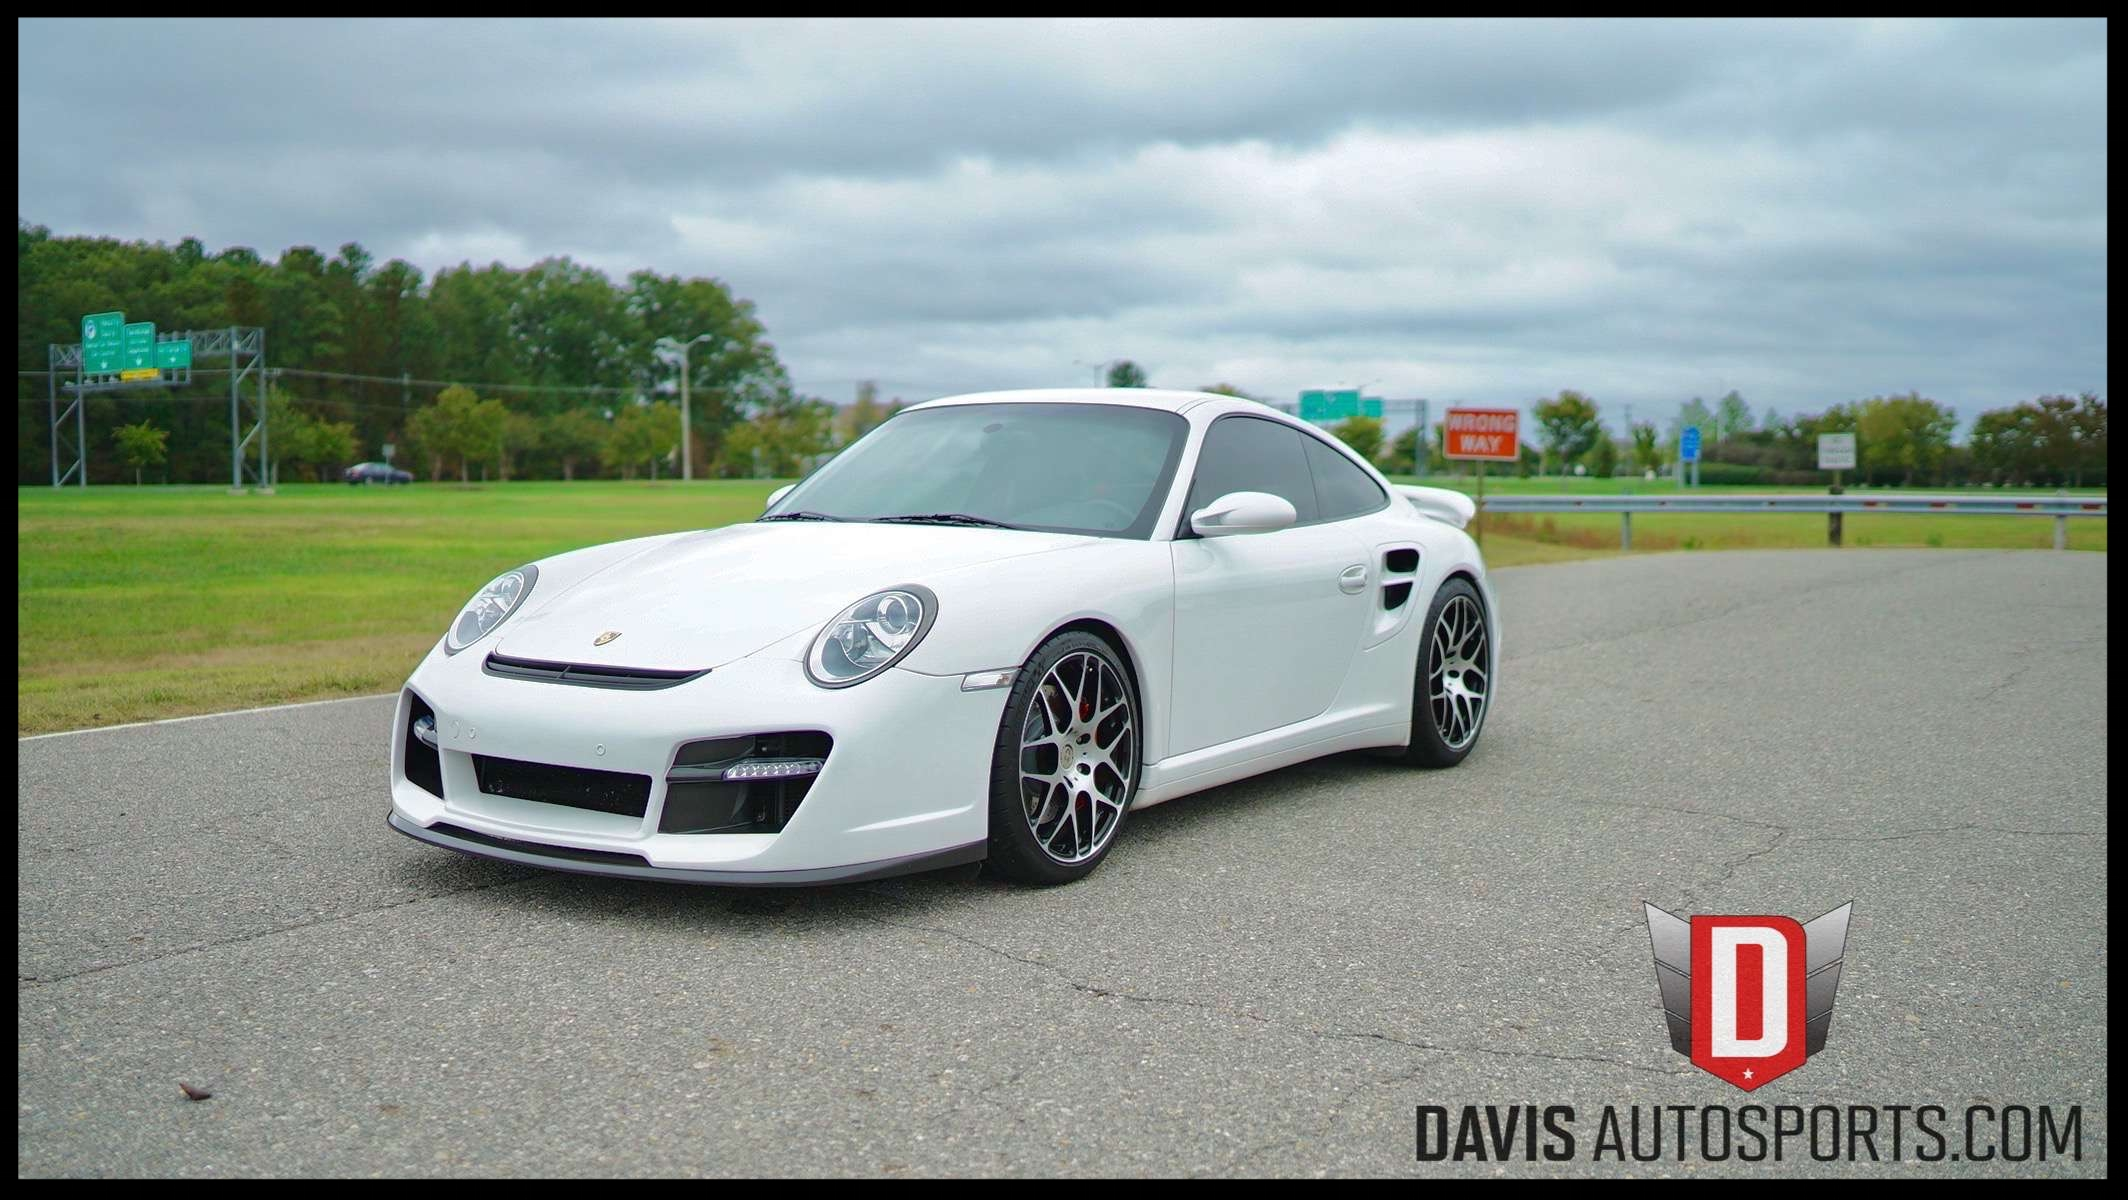 Porsche 911 997 Turbo HRE Wheels